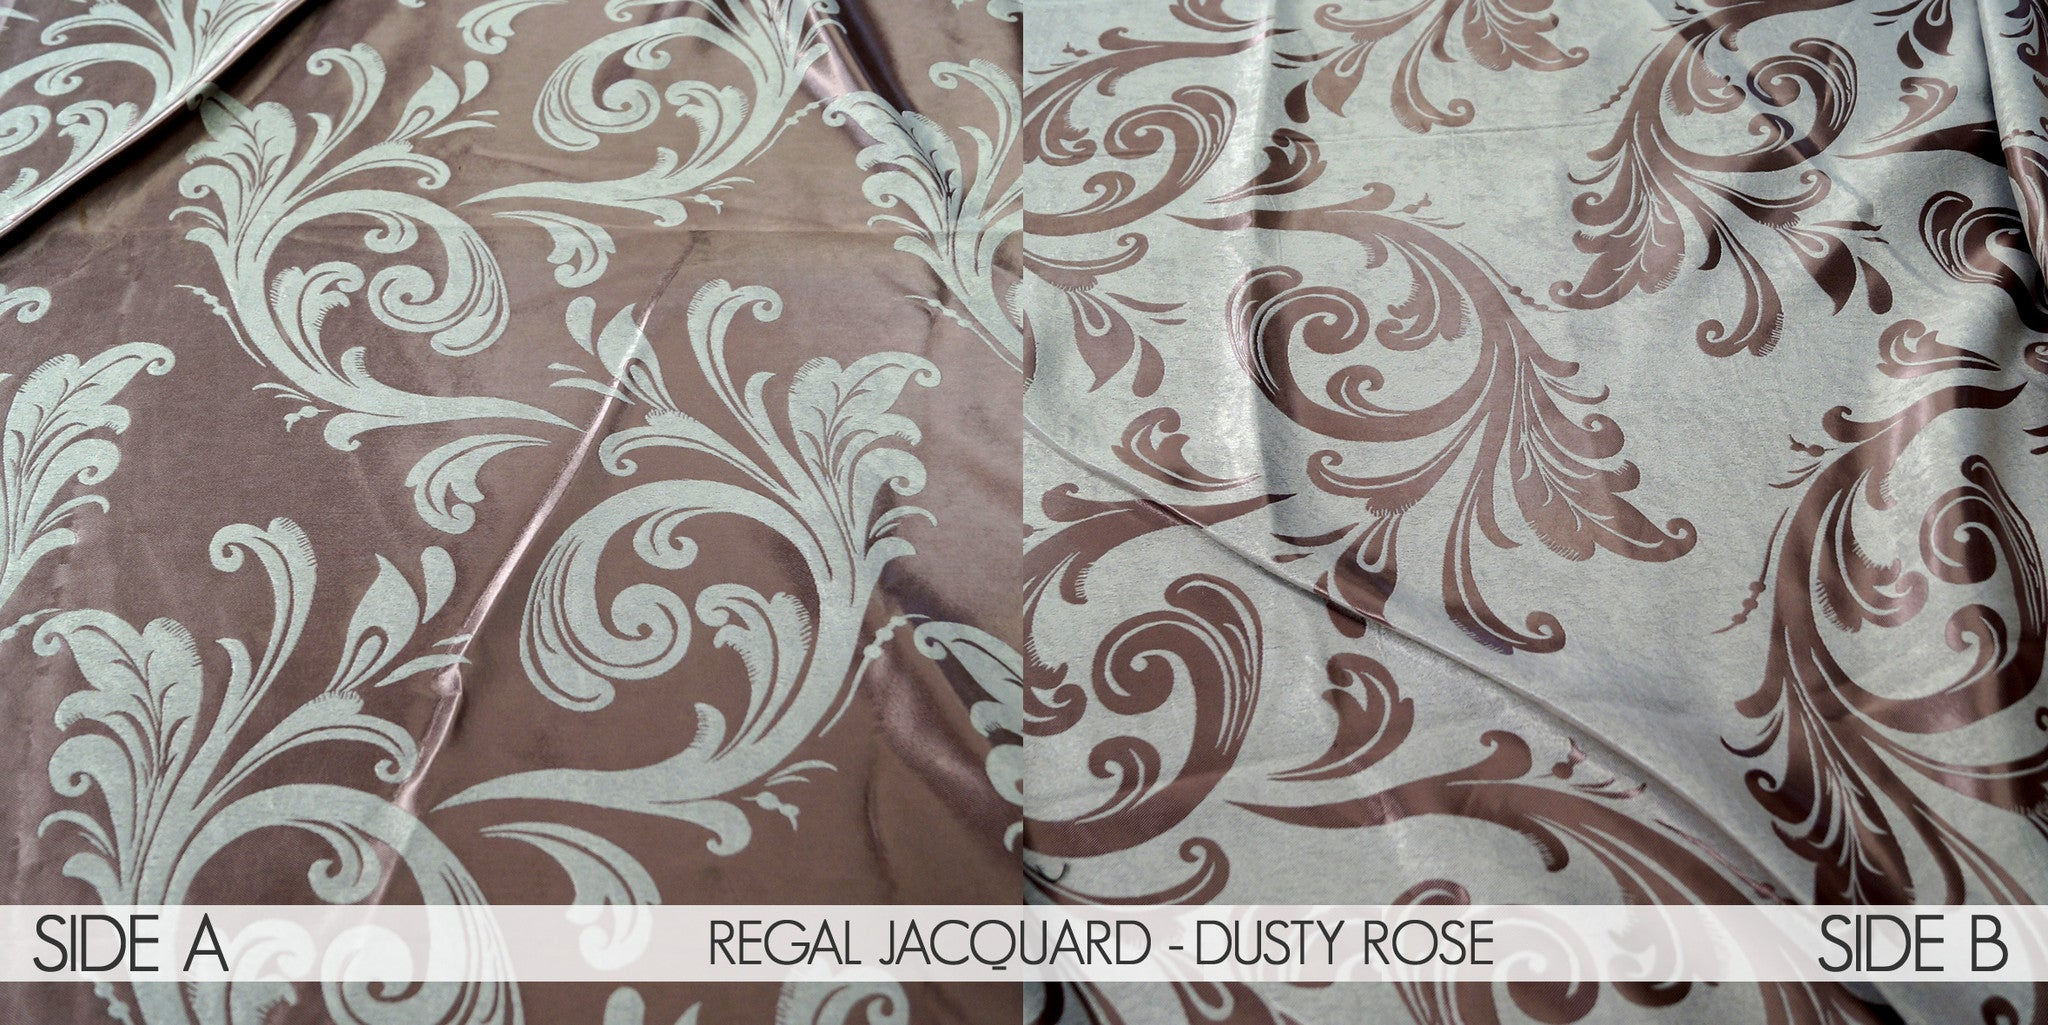 REGAL JACQUARD - DUSTY ROSE